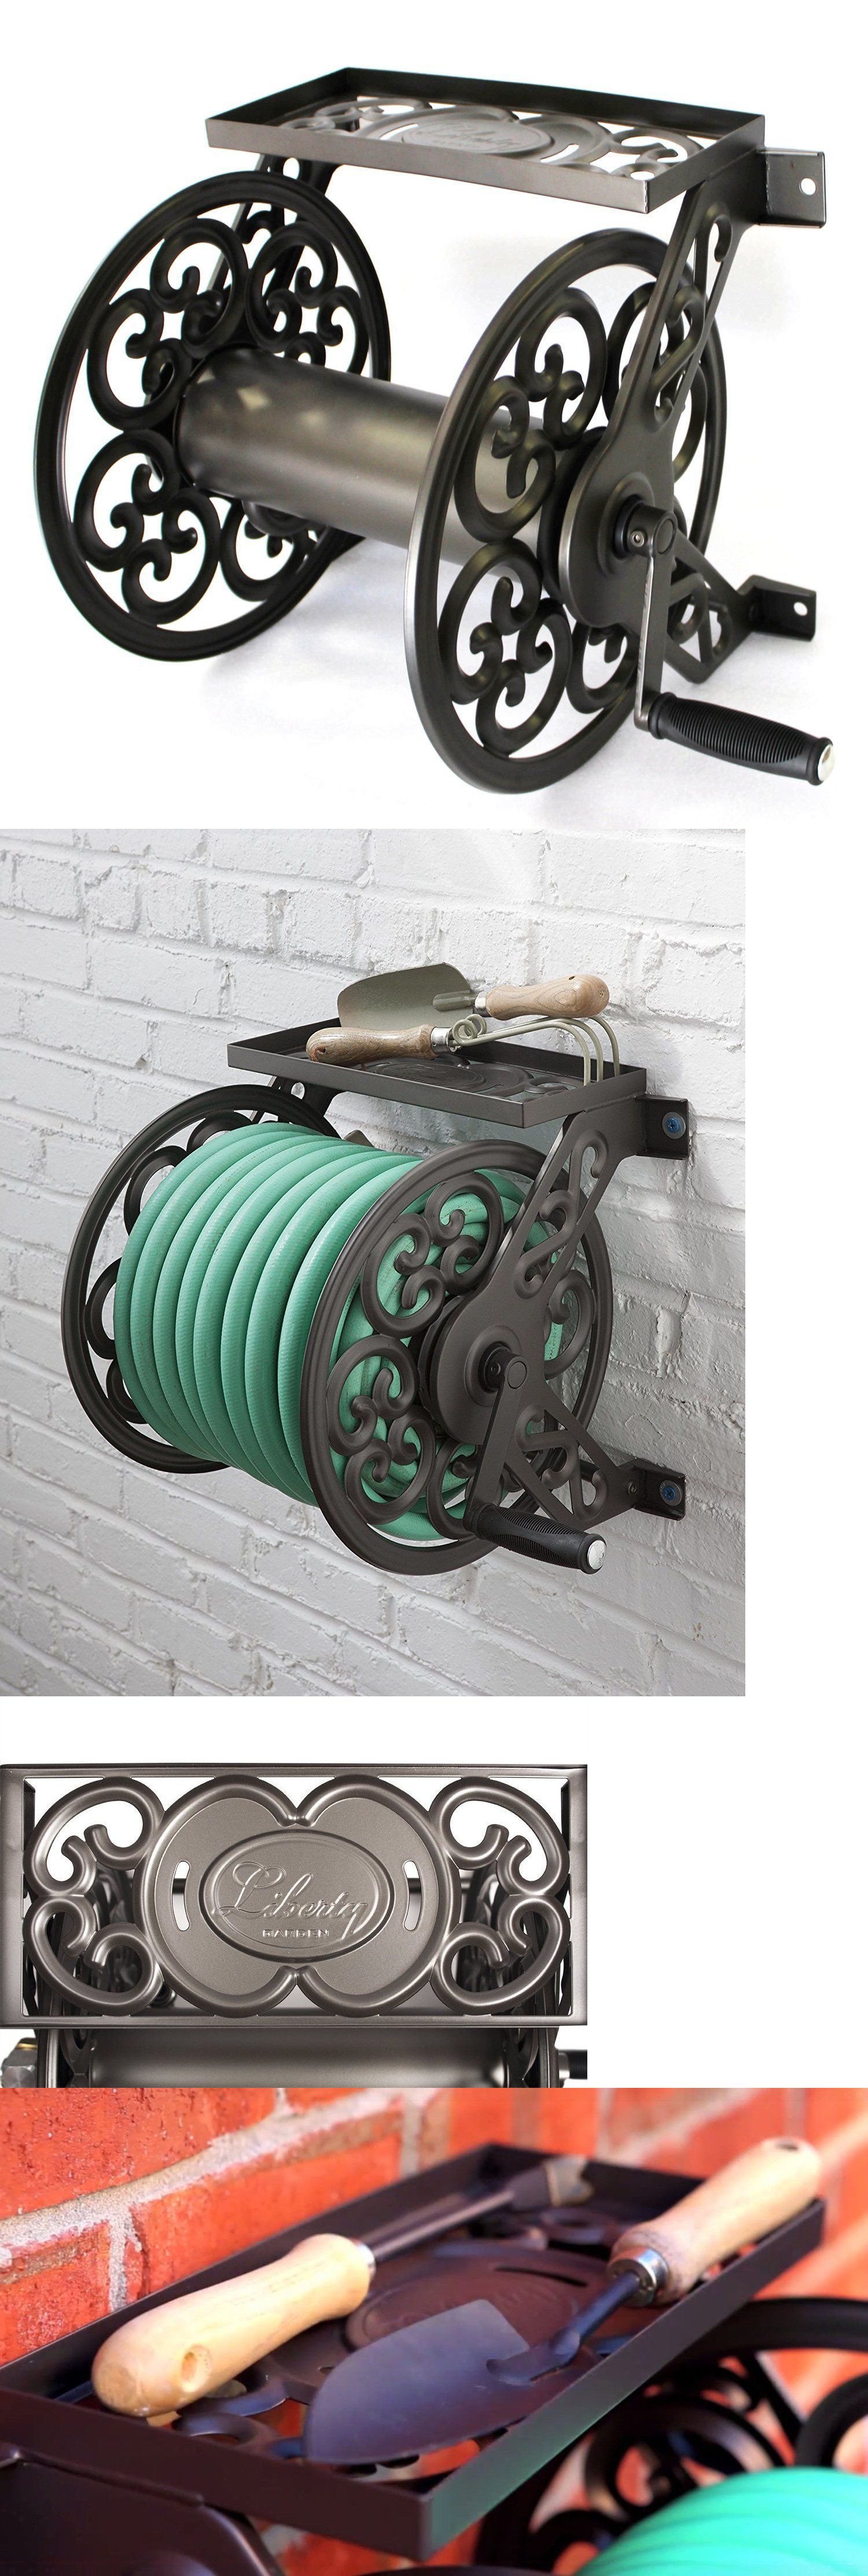 Hose reels and storage 46435 garden hose reel wall mount metal hose reels and storage 46435 garden hose reel wall mount metal decorative yard outdoor bronze amipublicfo Image collections